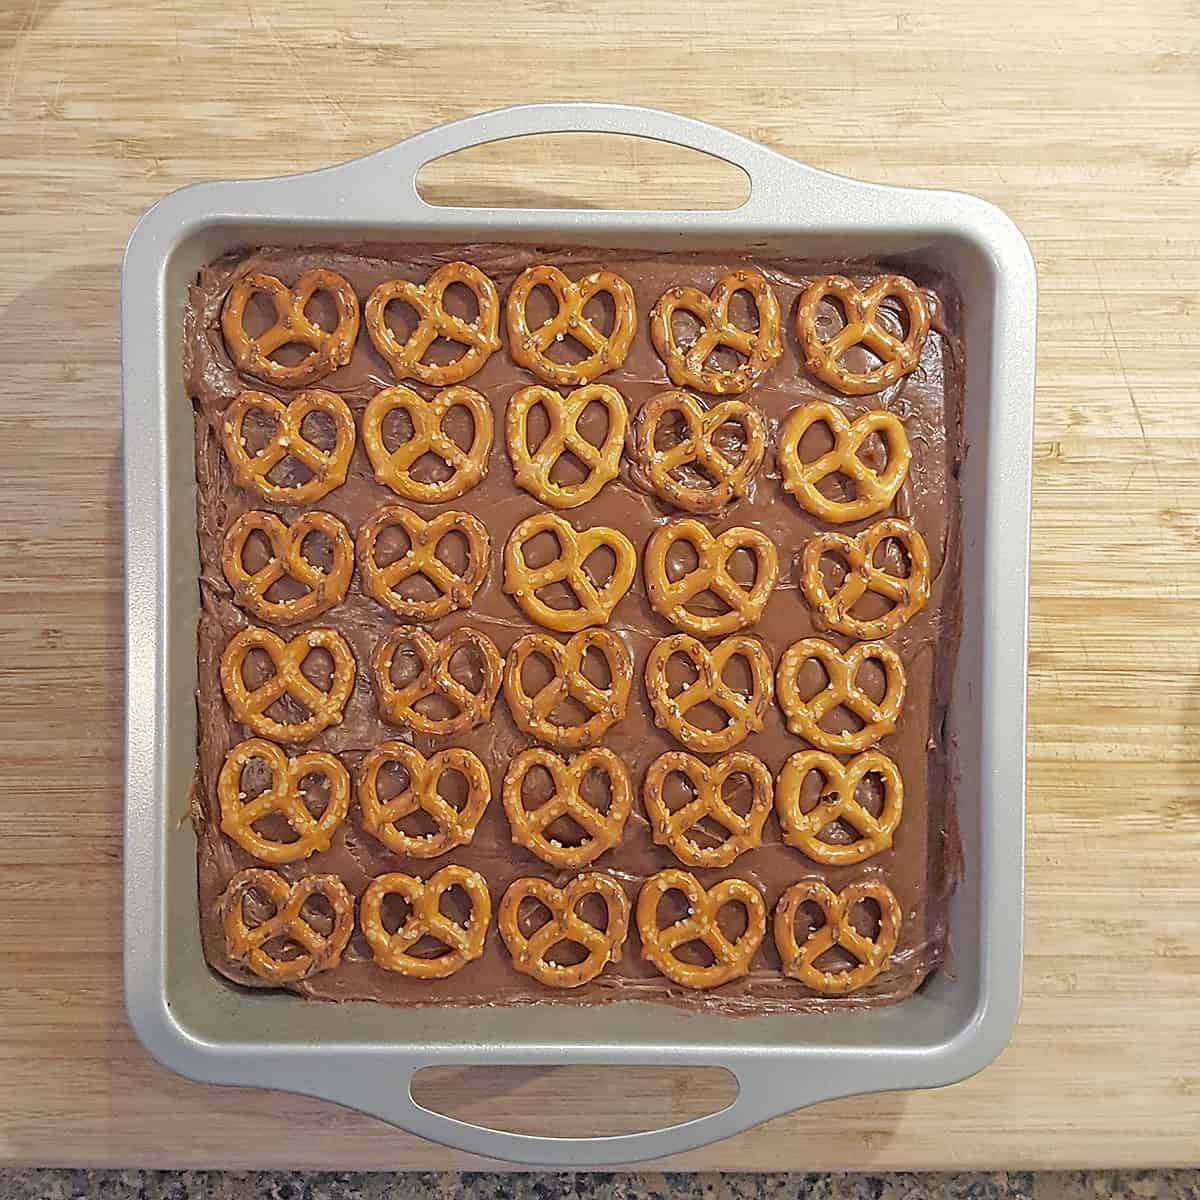 Brownies topped with a layer of milk chocolate frosting and mini pretzels.